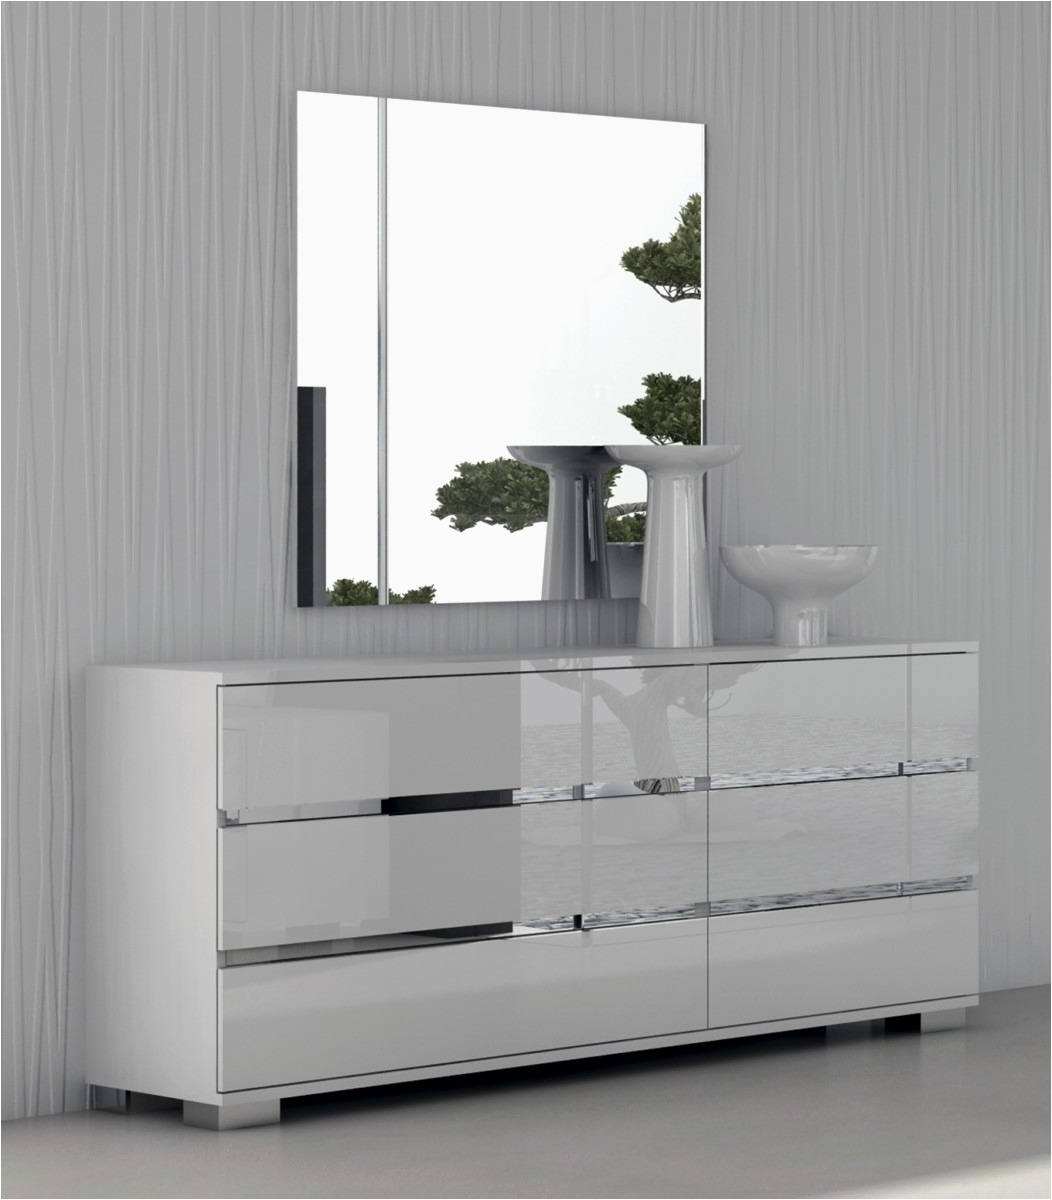 Modern Bedroom Dressers Create Pretty Bedroom Dressers intended for 15 Some of the Coolest Ideas How to Make Modern Bedroom Dressers